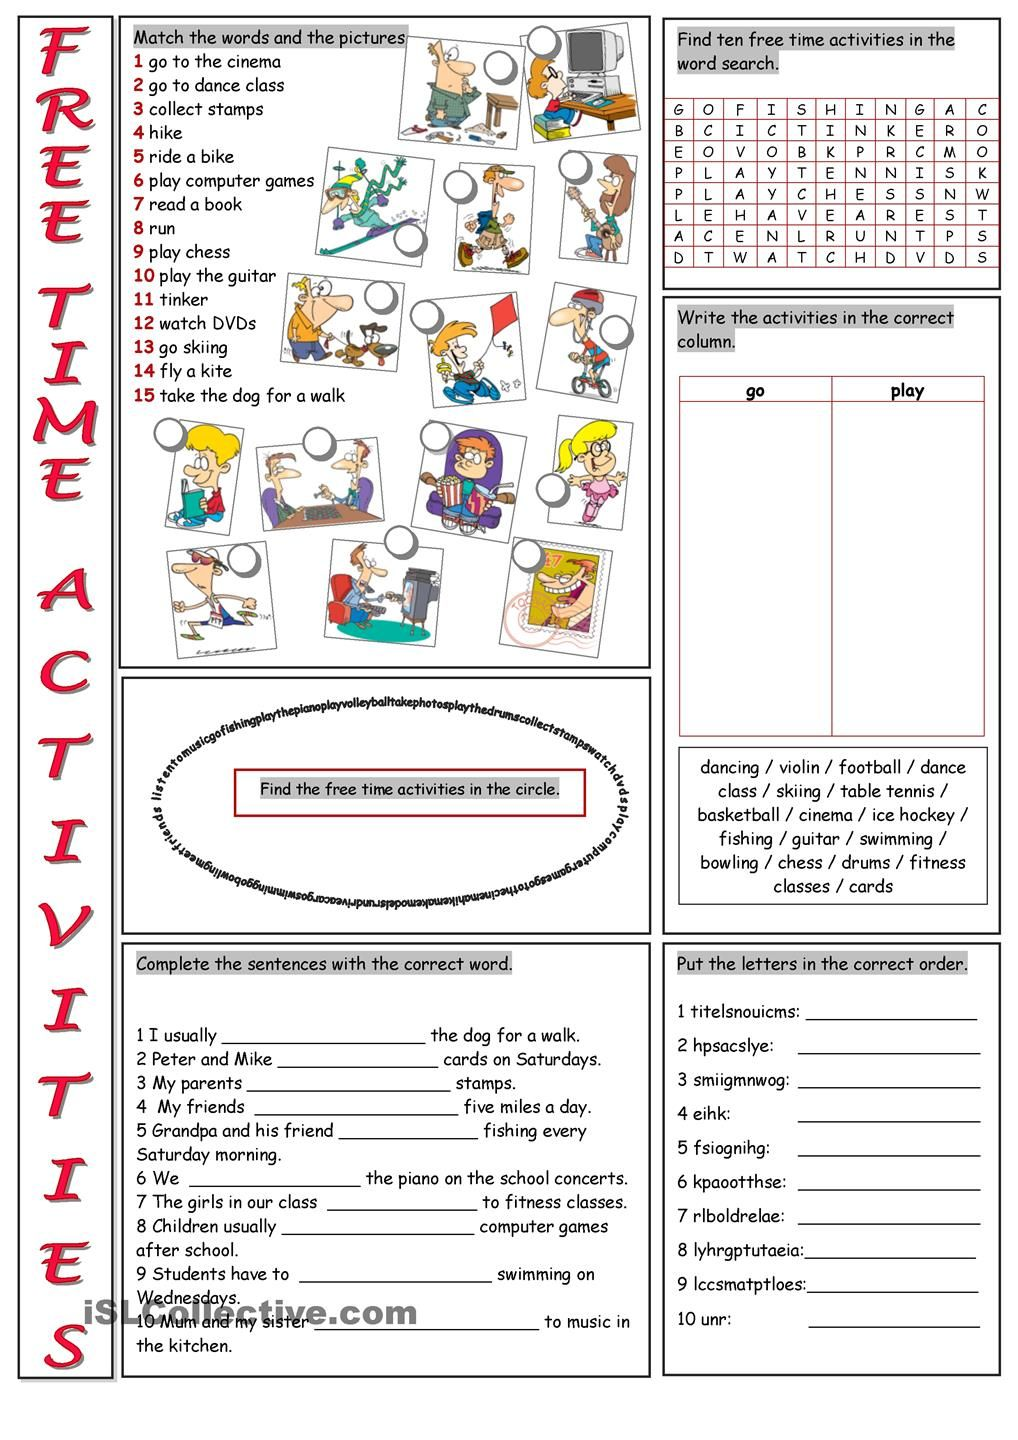 Free Time Activities Vocabulary Exercises English Worksheets